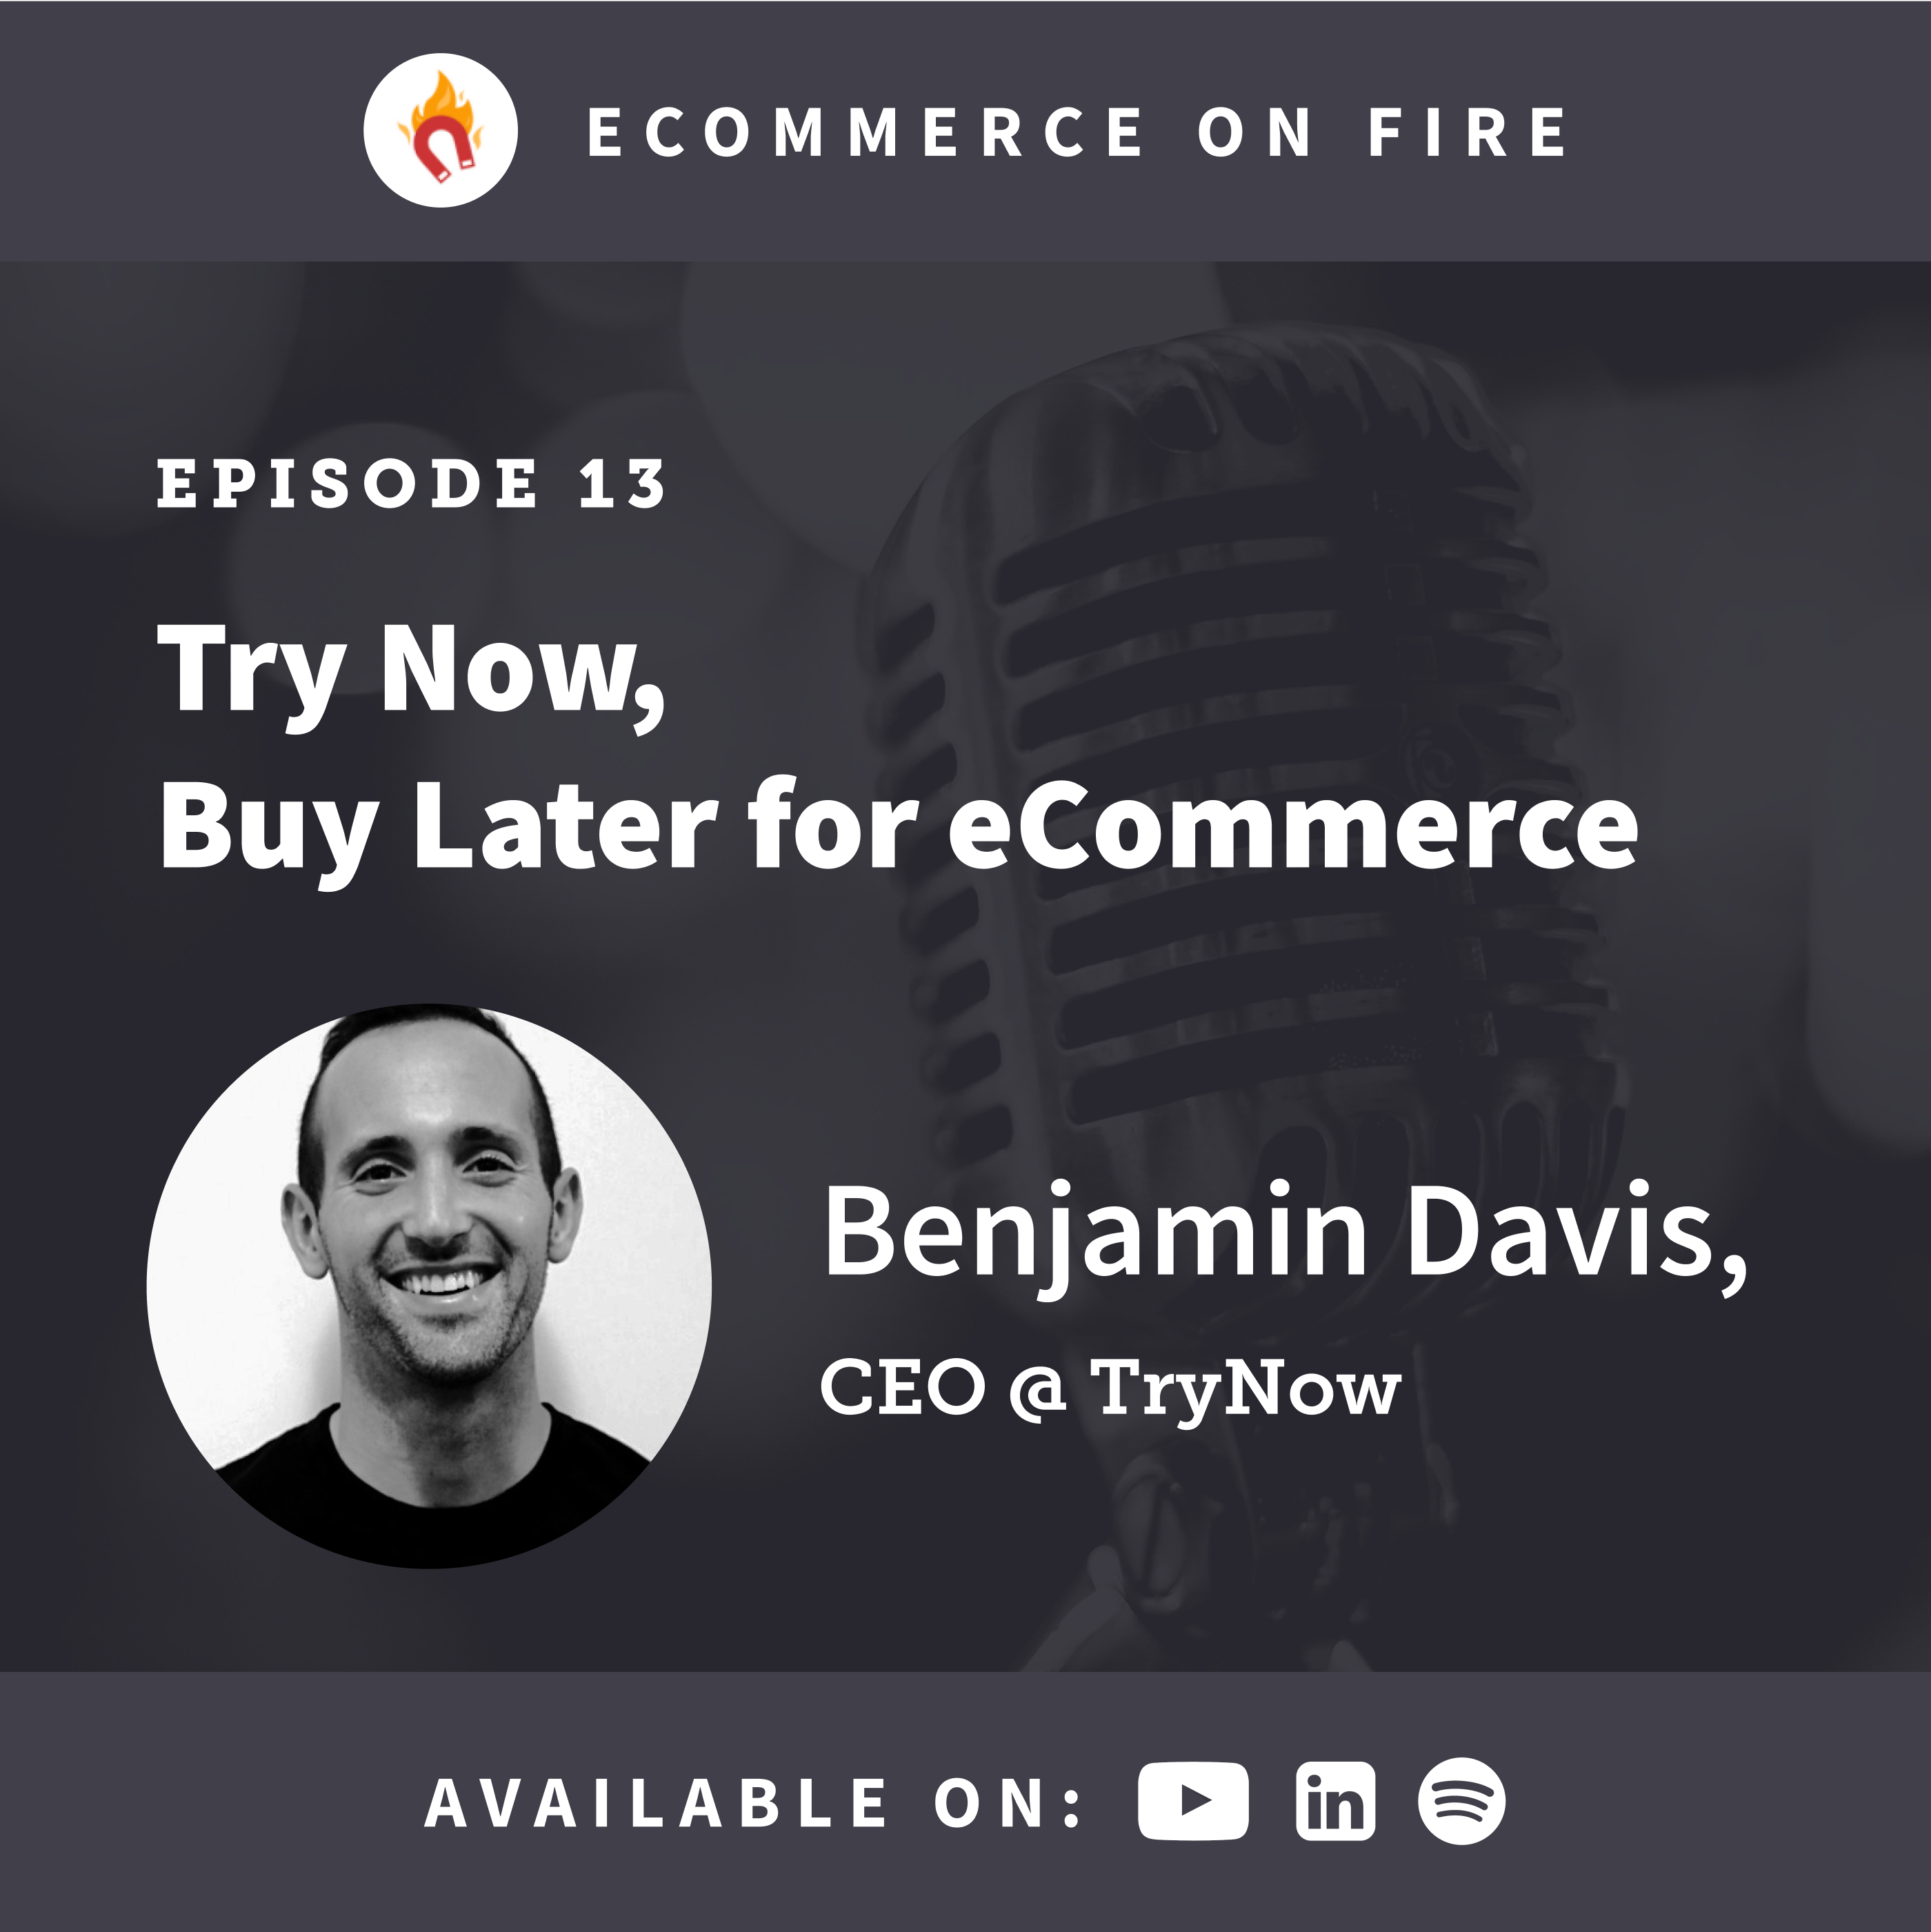 eCommerce on Fire Episode 13 🤑🛒🔥 with Benjamin Davis, CEO @ TryNow - Try Now, Buy Later software